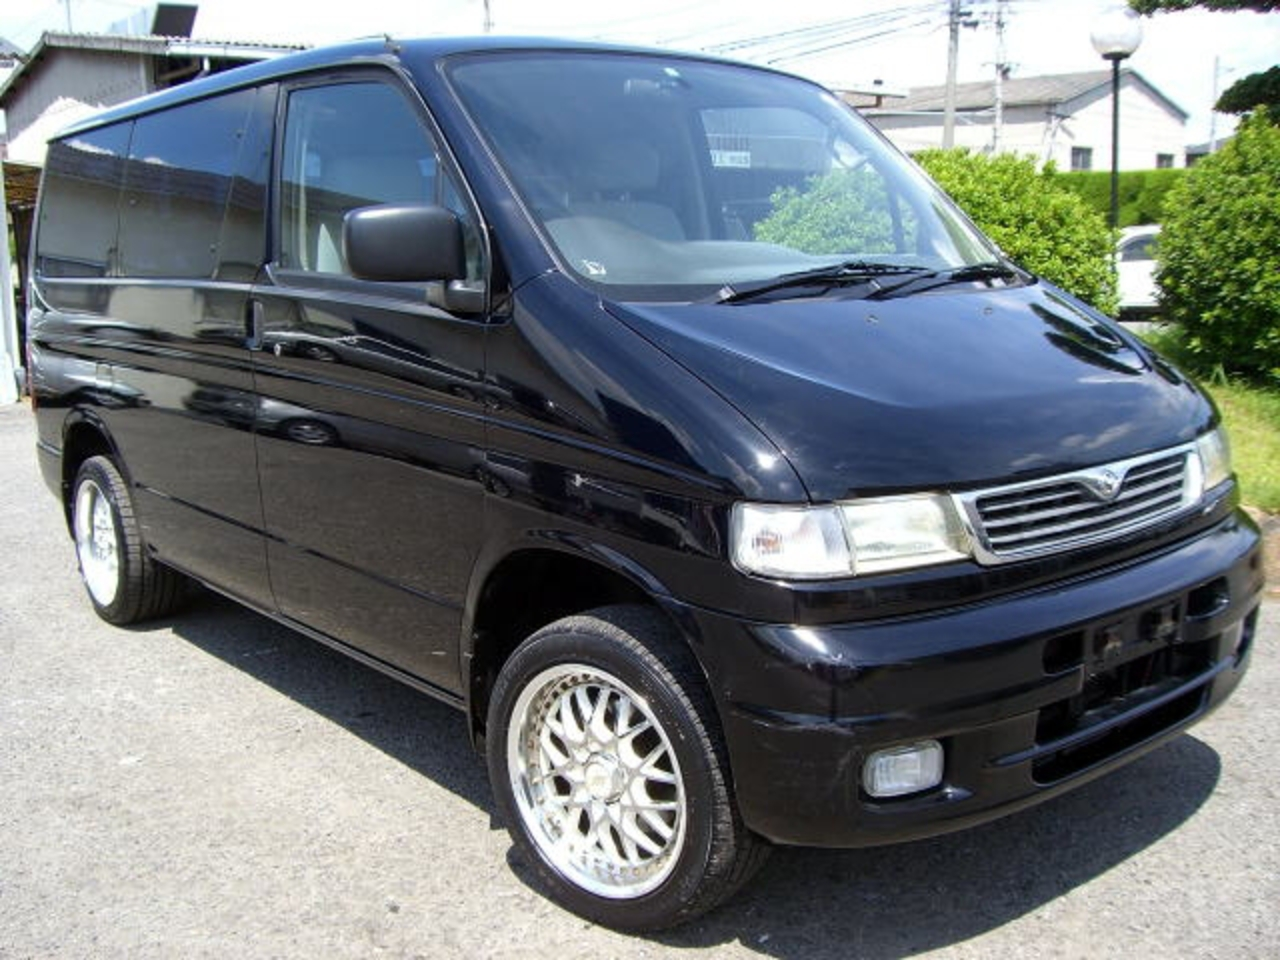 Mazda Bongo Friendee 4WD. View Download Wallpaper. 640x480. Comments